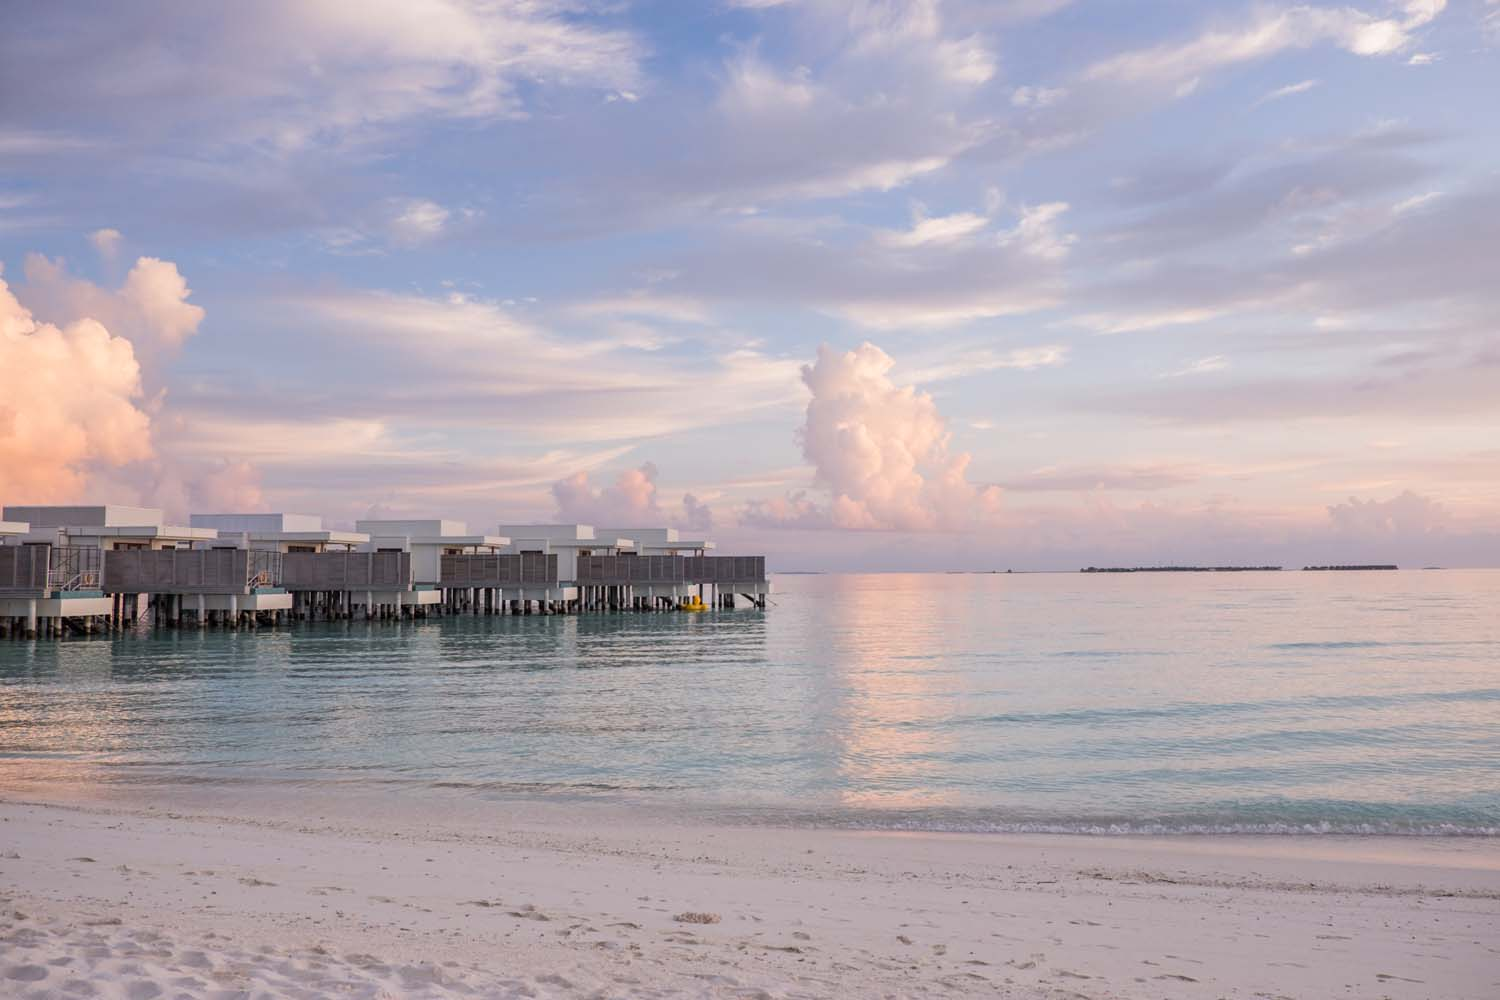 Looking for a cool place for your Maldives all-inclusive holidays? Check out Dhigali, a sleek design hotel with great prices, activities and dining options for your Maldives holidays.